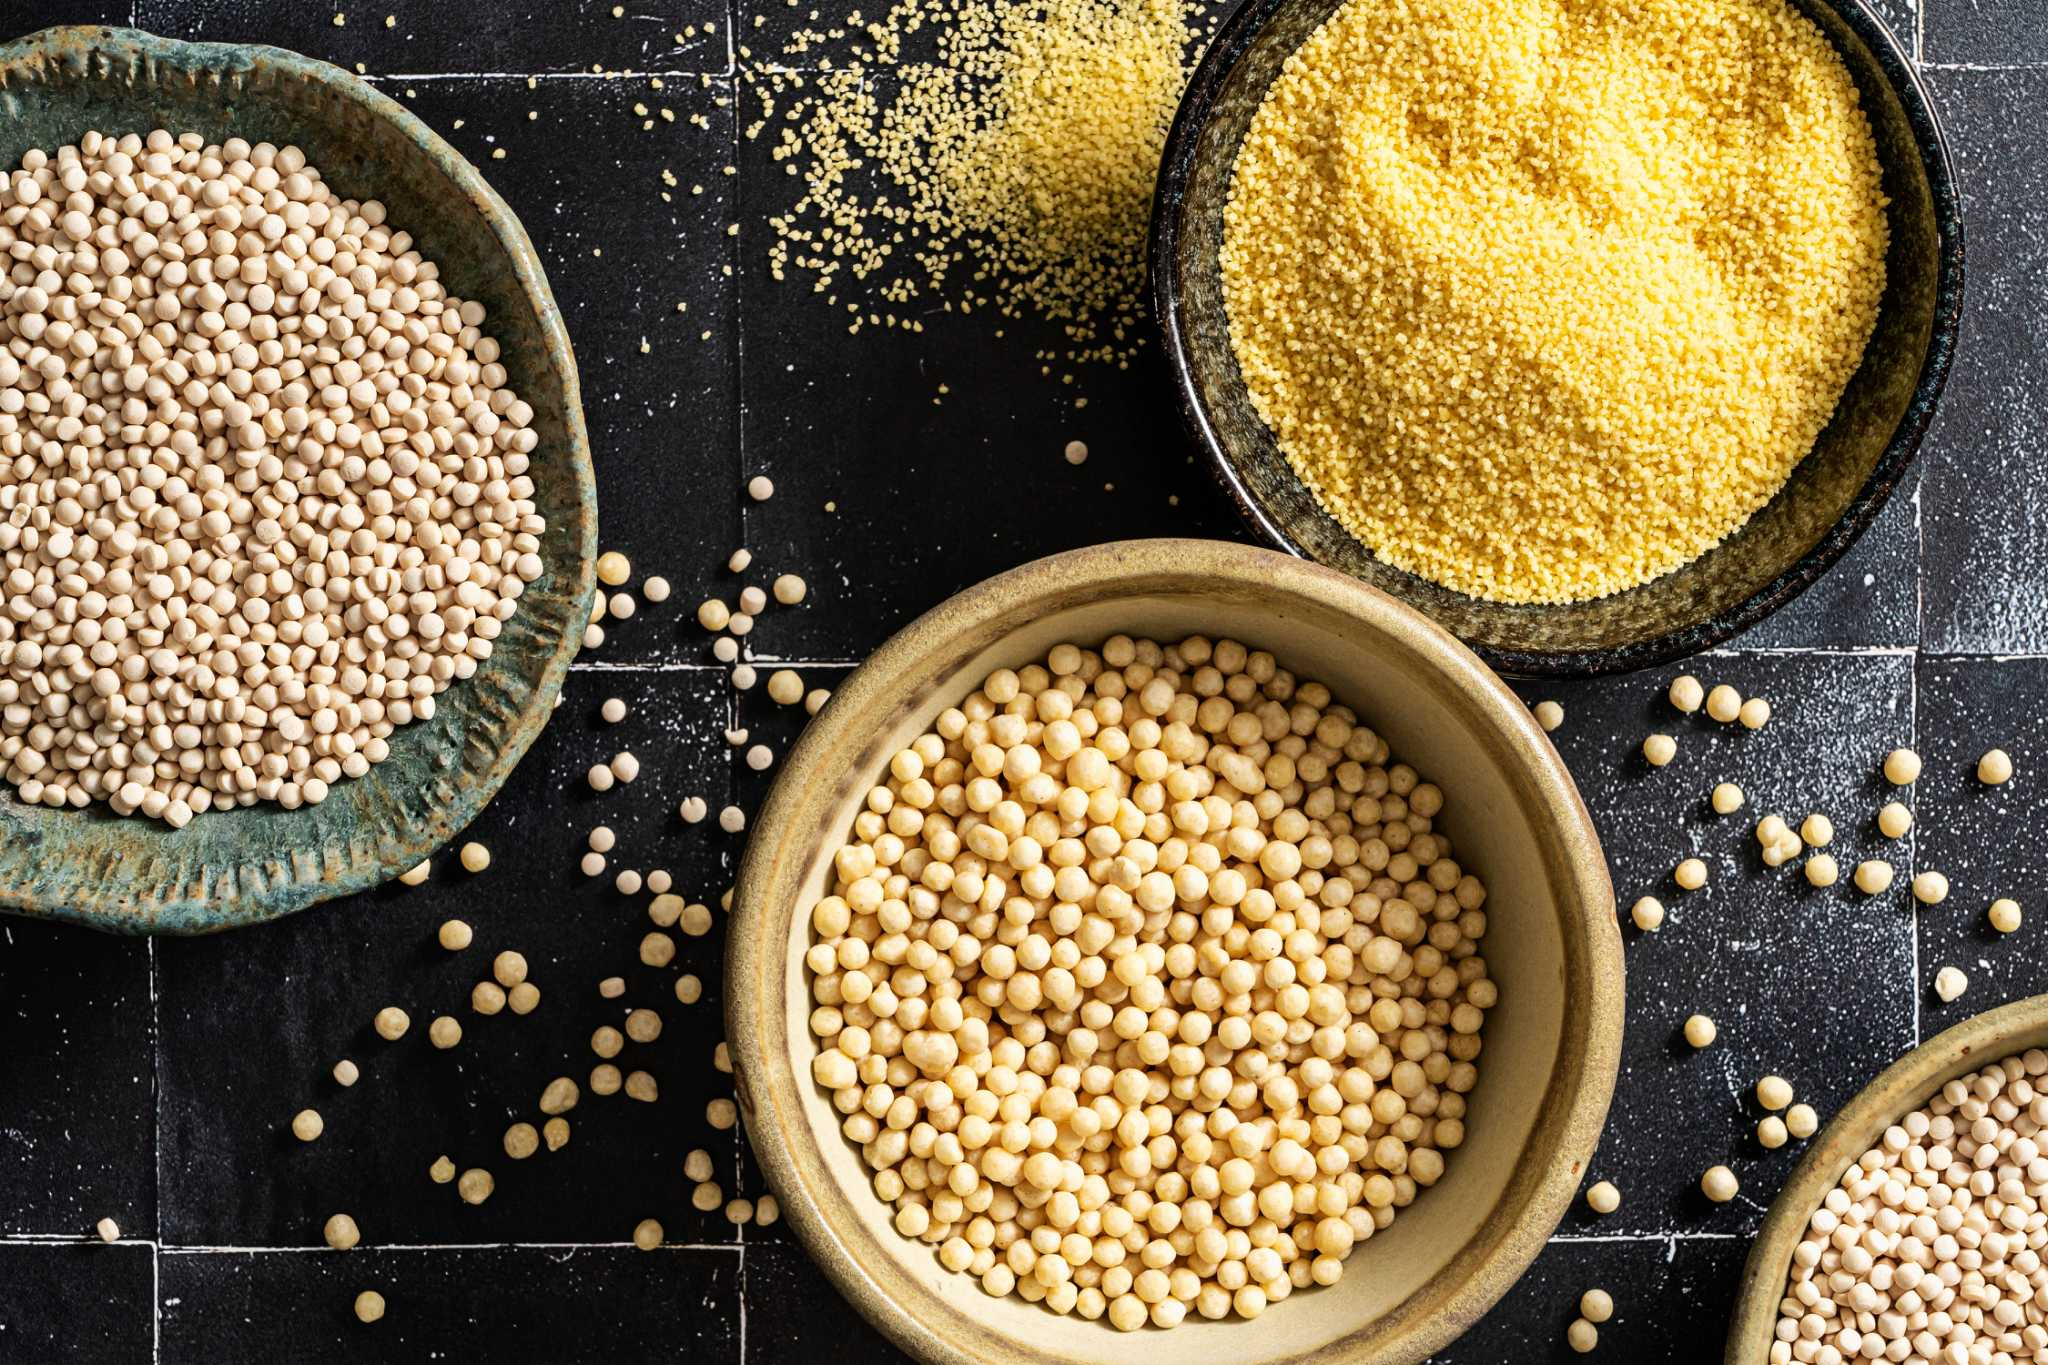 A guide to couscous: The history, different types and how to cook with it